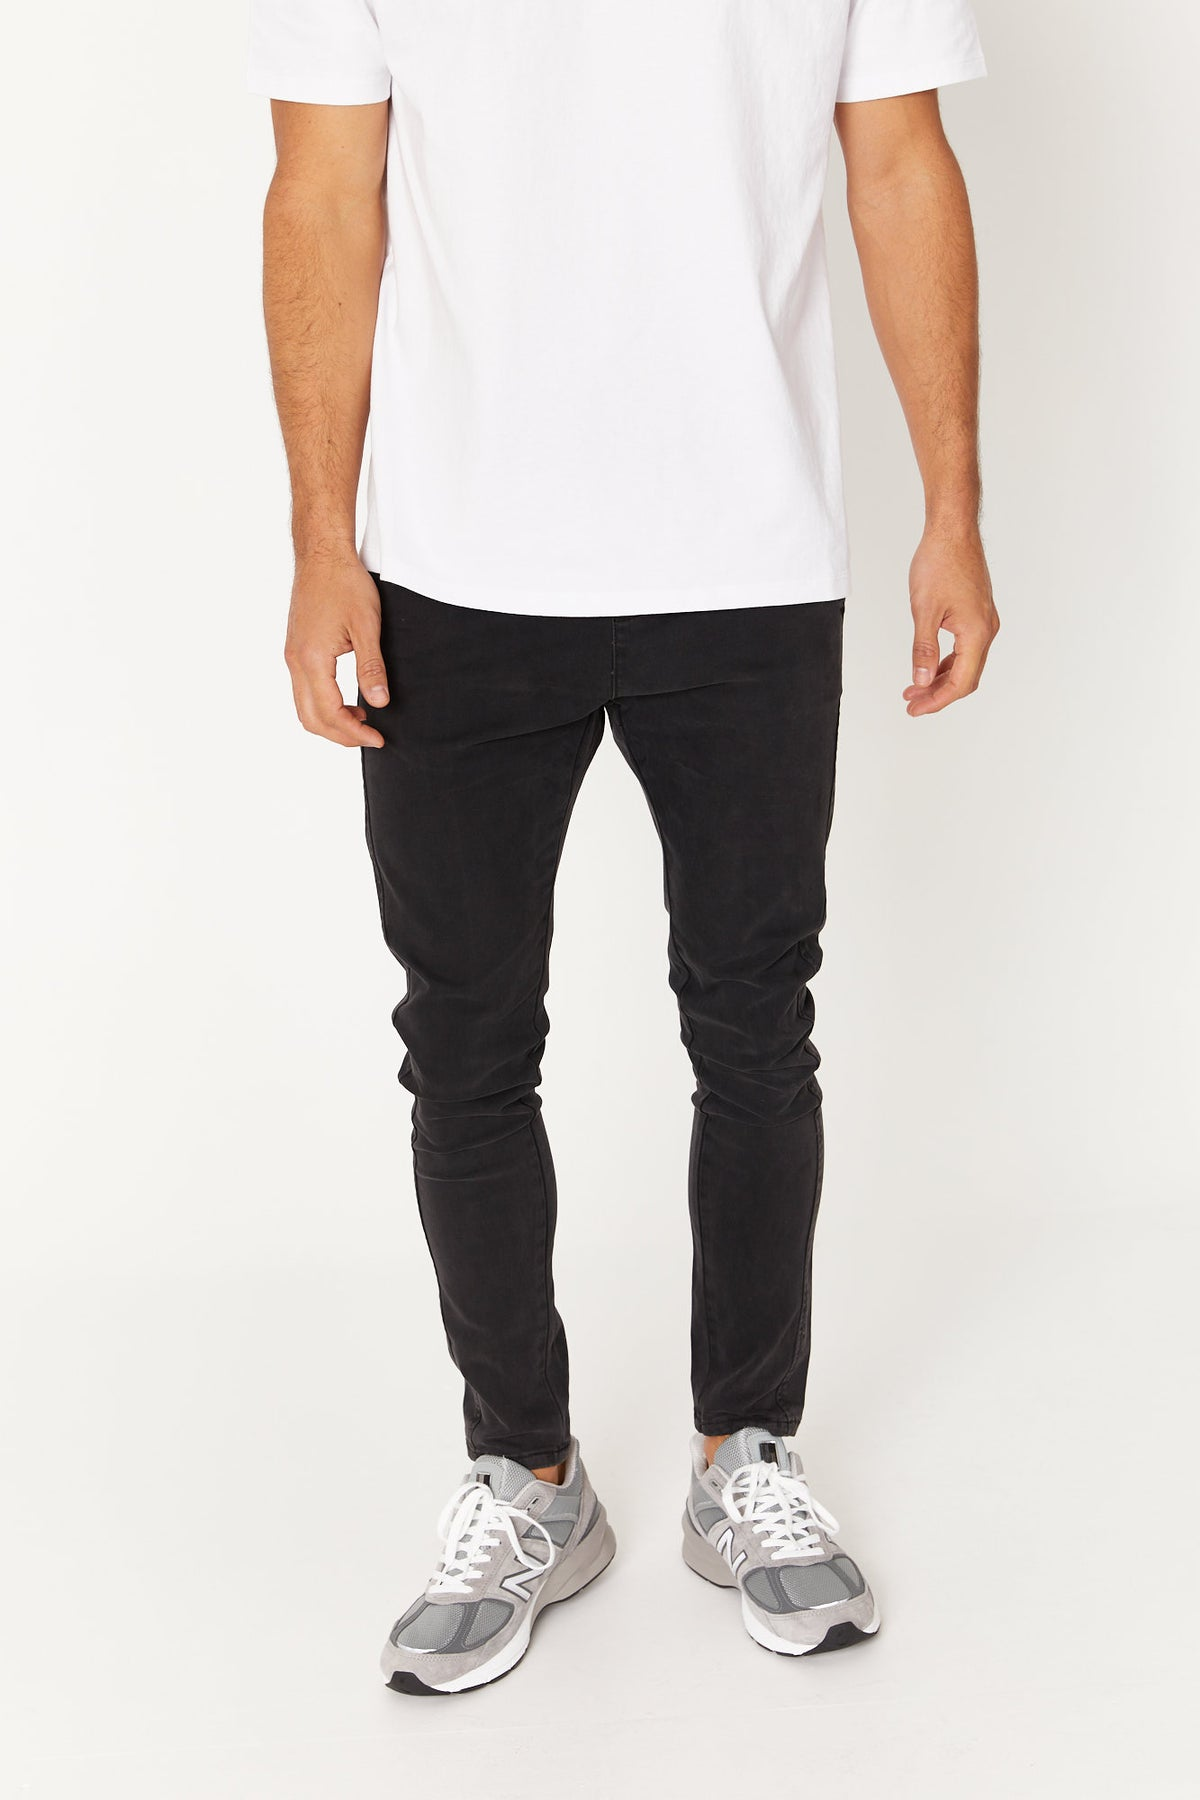 NTH Jogger Skinny Faded Black